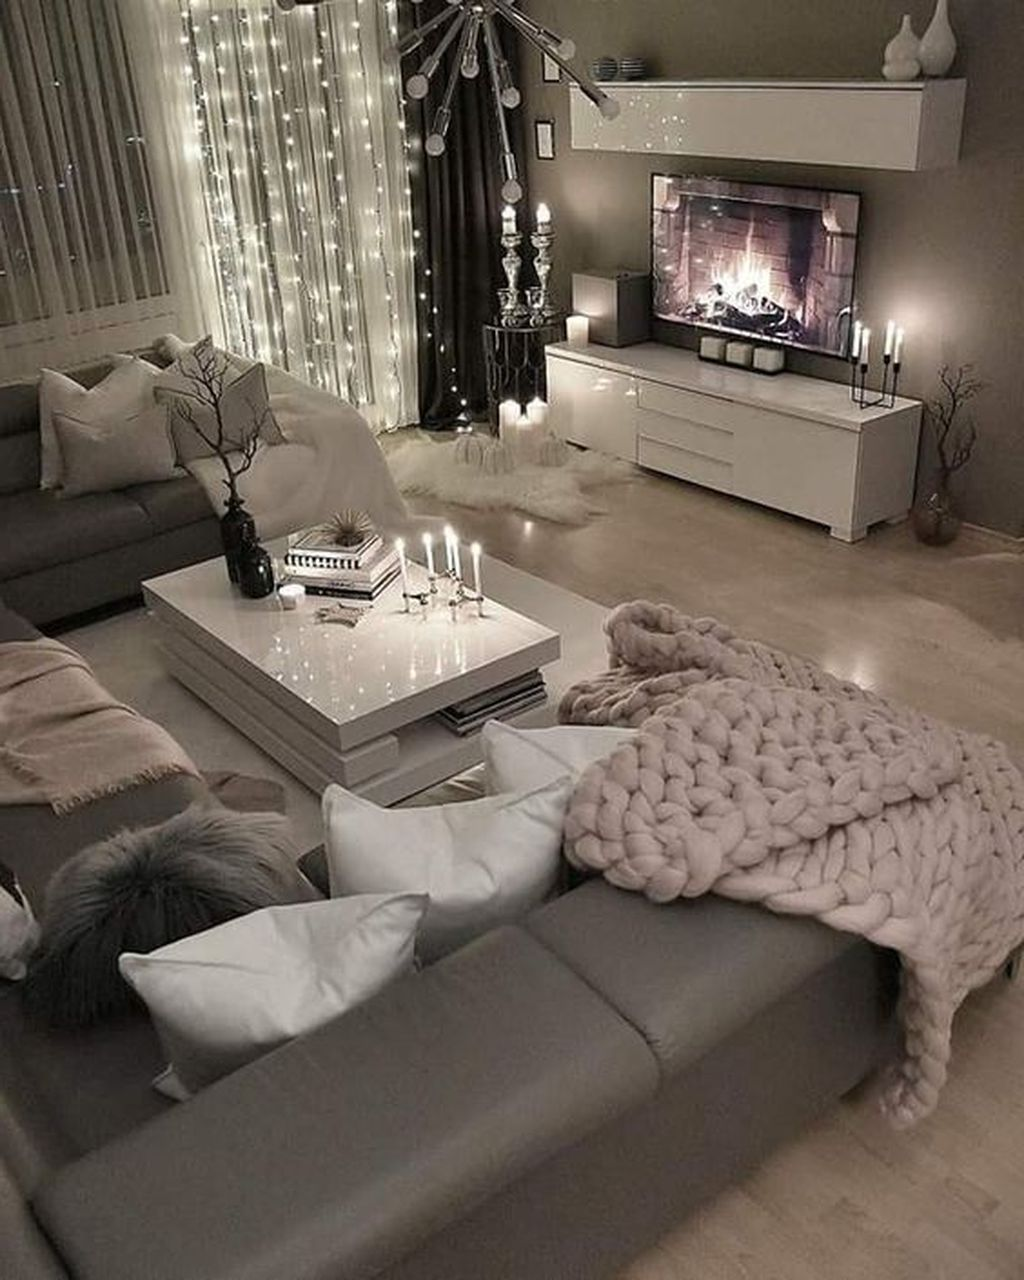 Modern And Glam Living Room Decorating Ideas Decorating Glam Ideas Living Modern Room Glam Living Room Living Room Decor Cozy Cozy Living Rooms Living room ideas redecorating